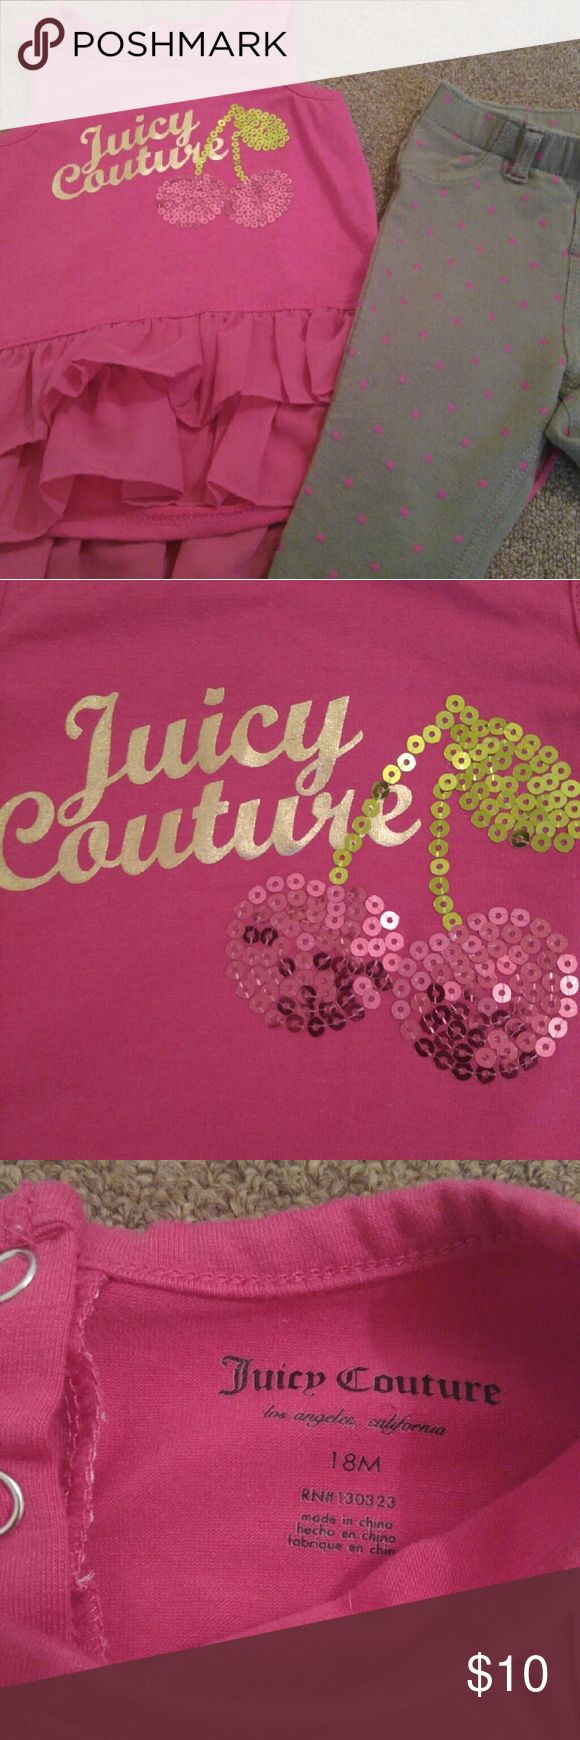 2PCS JUICY COUTURE/CIRCO 18m Very cute Juicy Couture Matching Sets